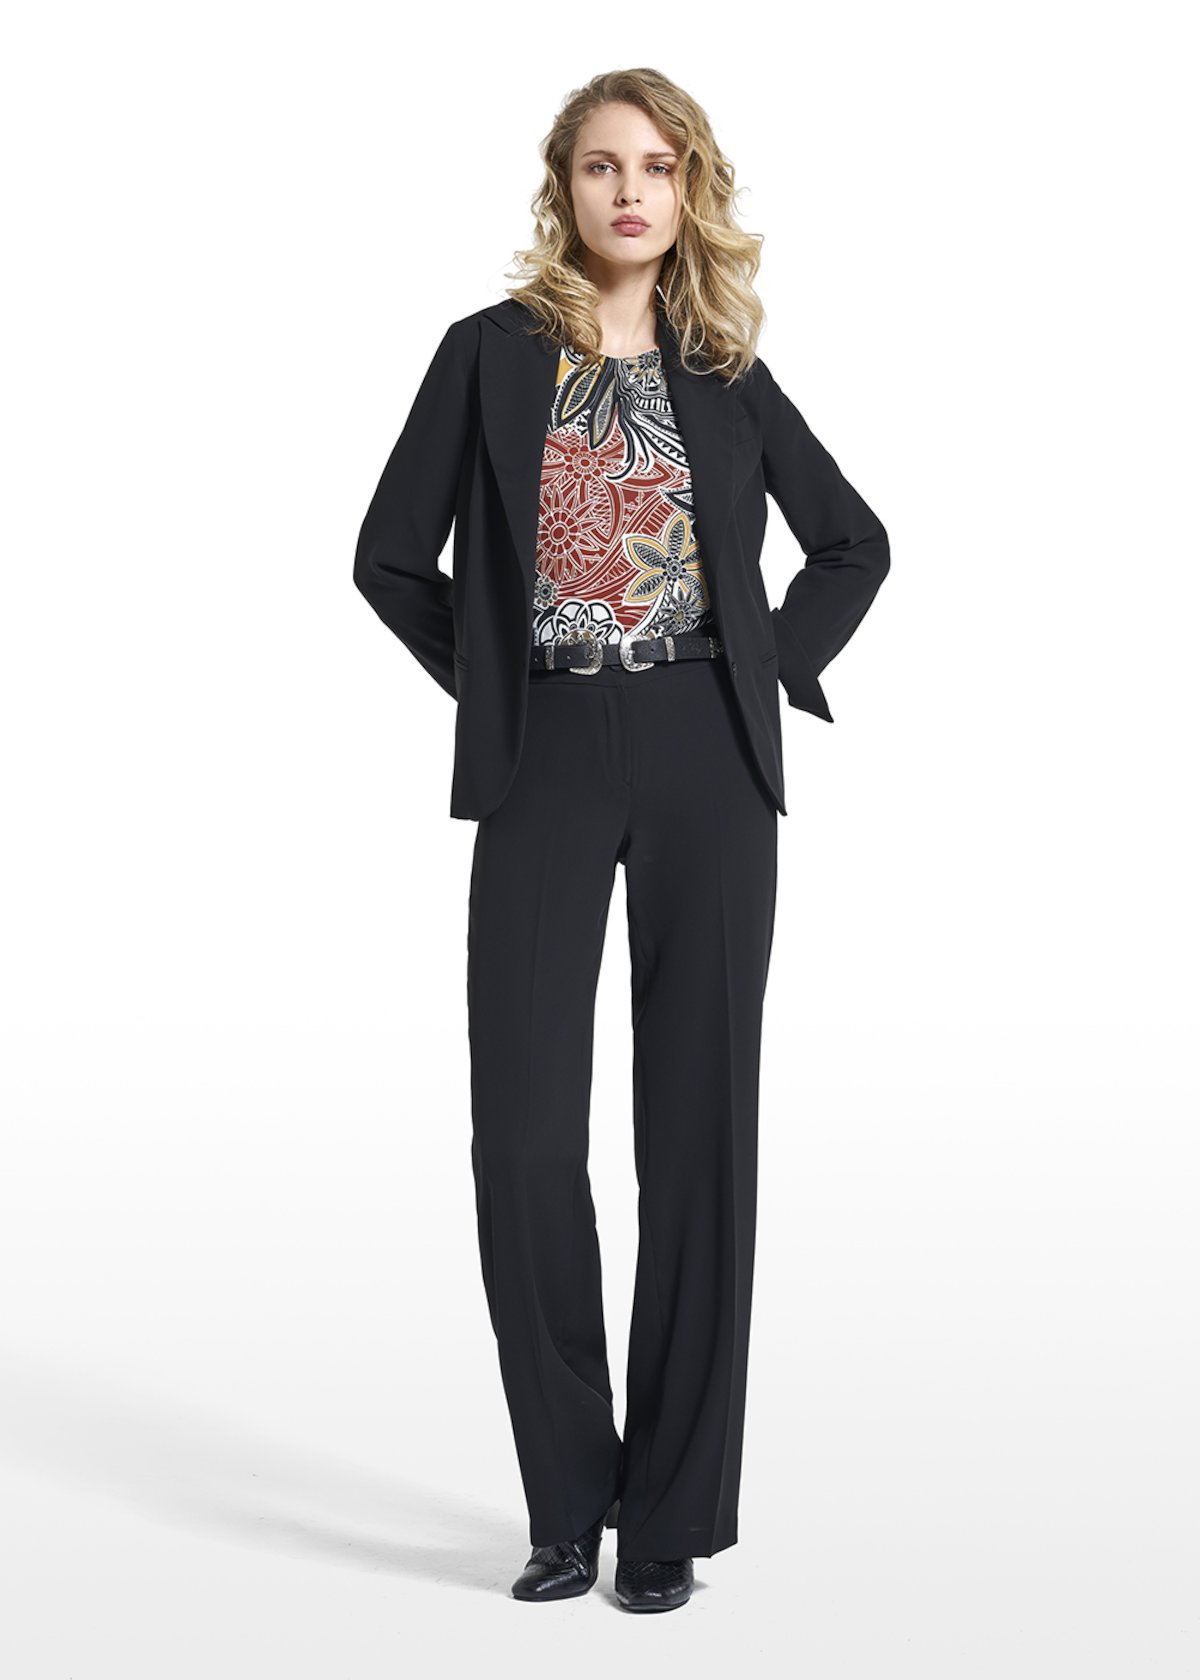 Jacket Gioia in jolie cady fabric - Black - Woman - Category image